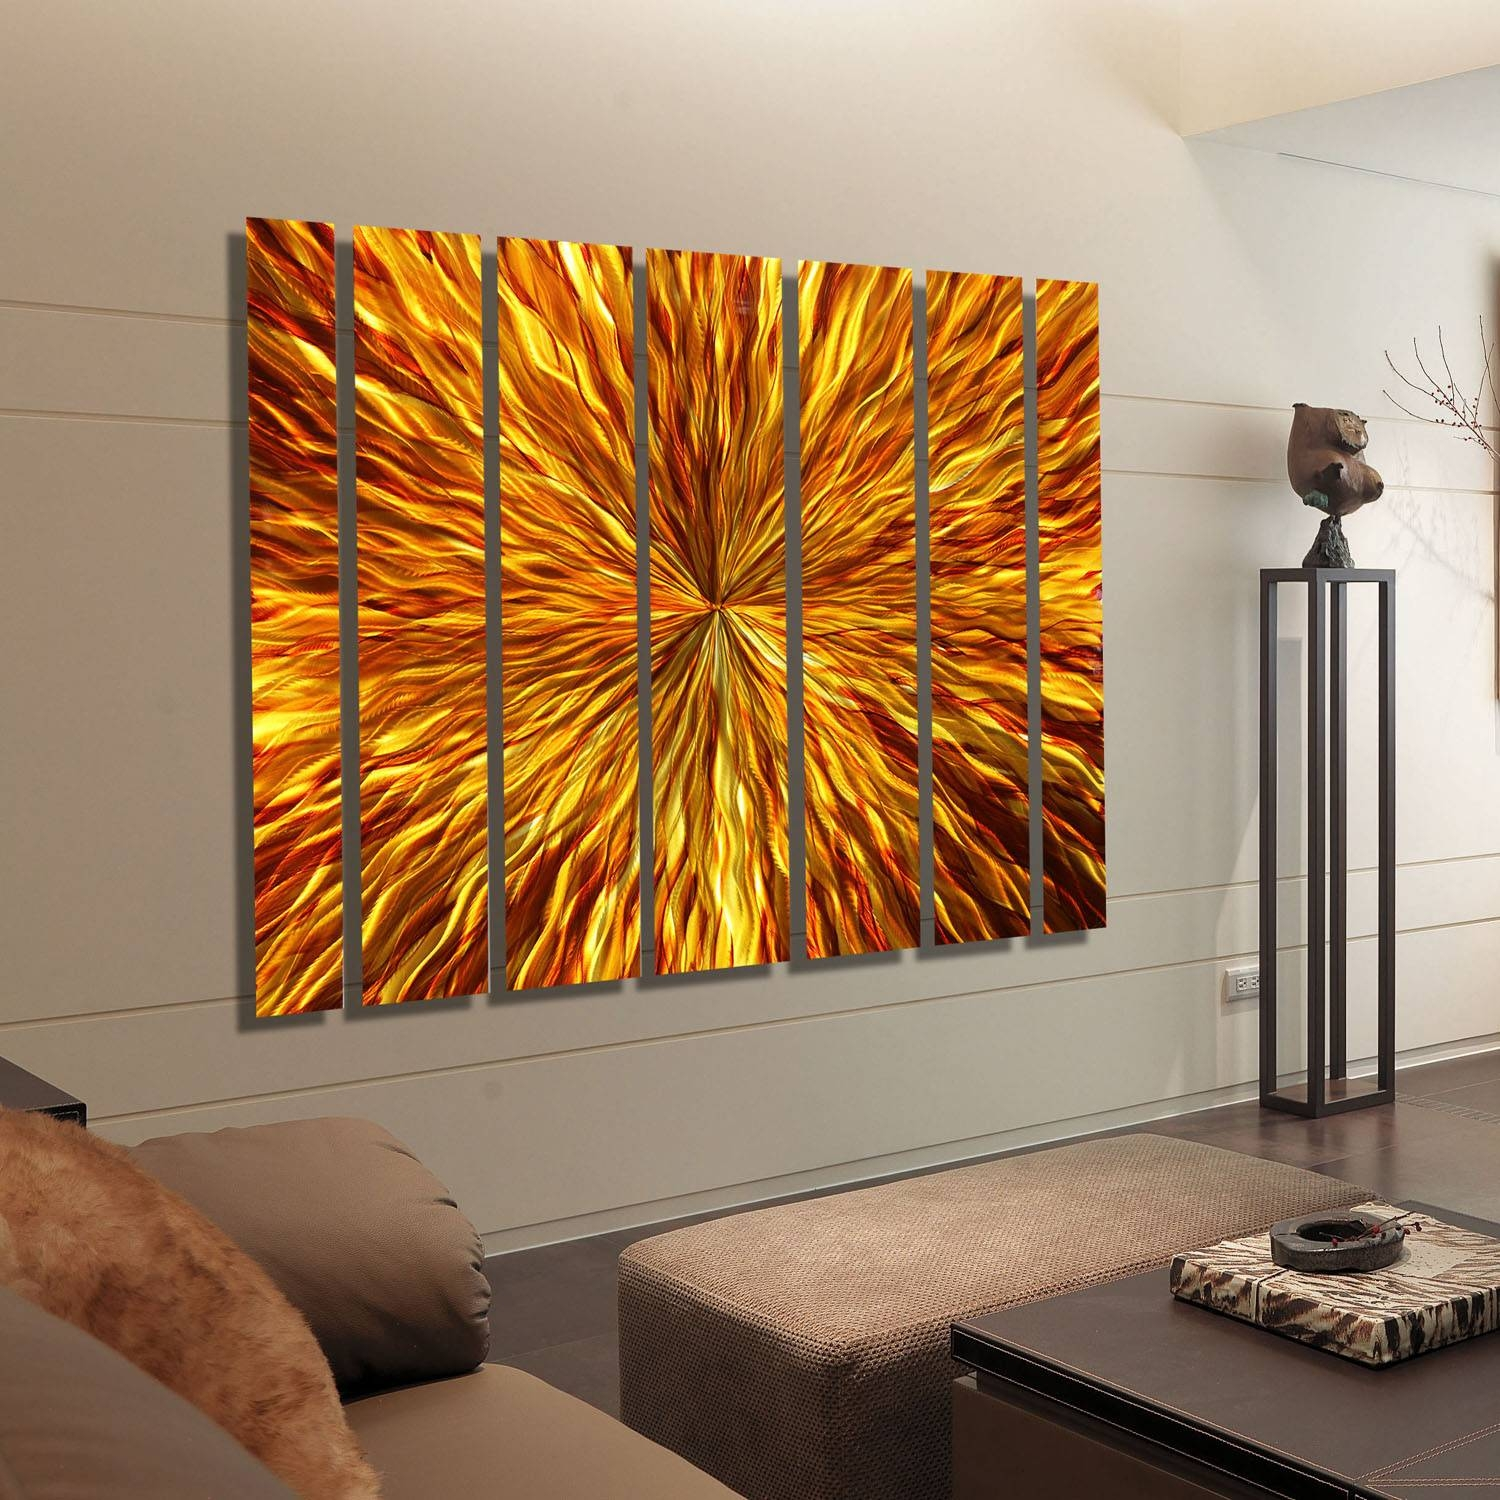 Amber Vortex Xl – Extra Large Modern Metal Wall Artjon Allen With Regard To Recent Large Abstract Metal Wall Art (View 4 of 20)